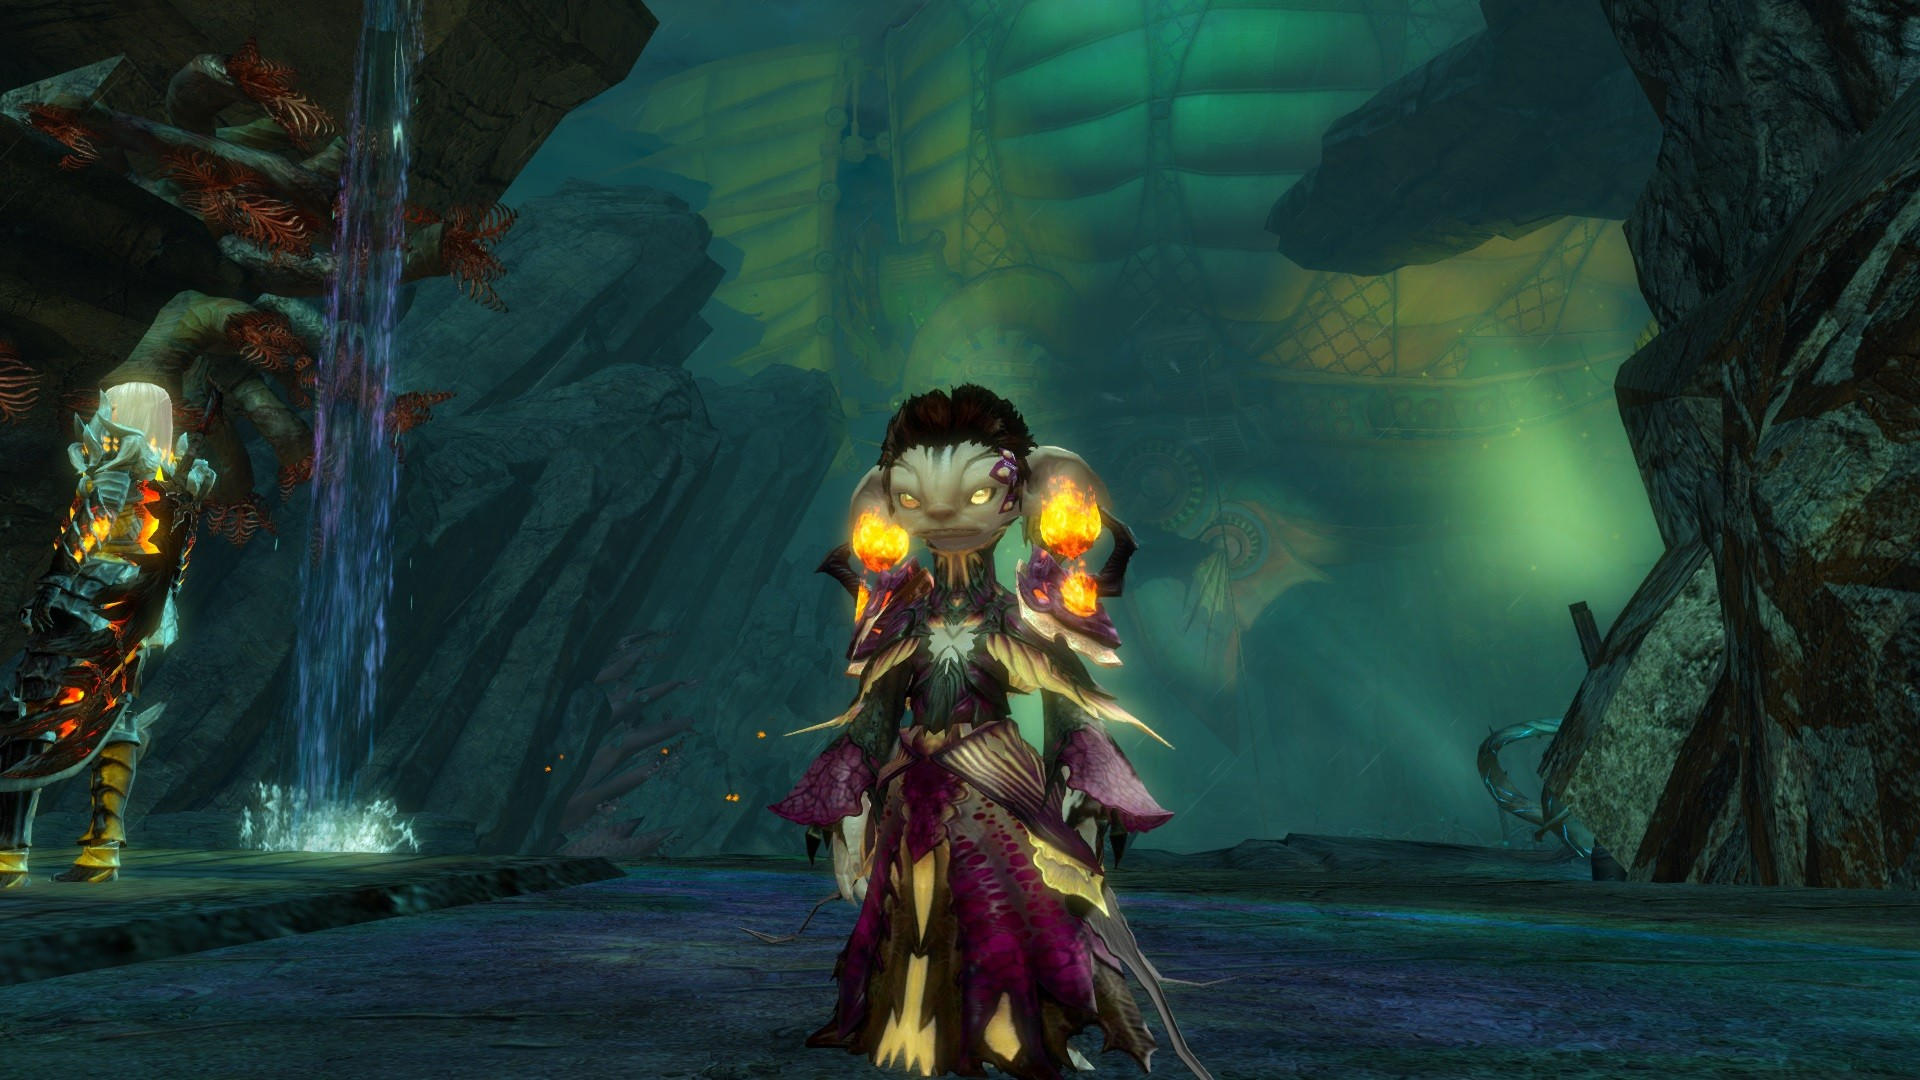 GW2-My Elementalist Asura entering the final Battle!